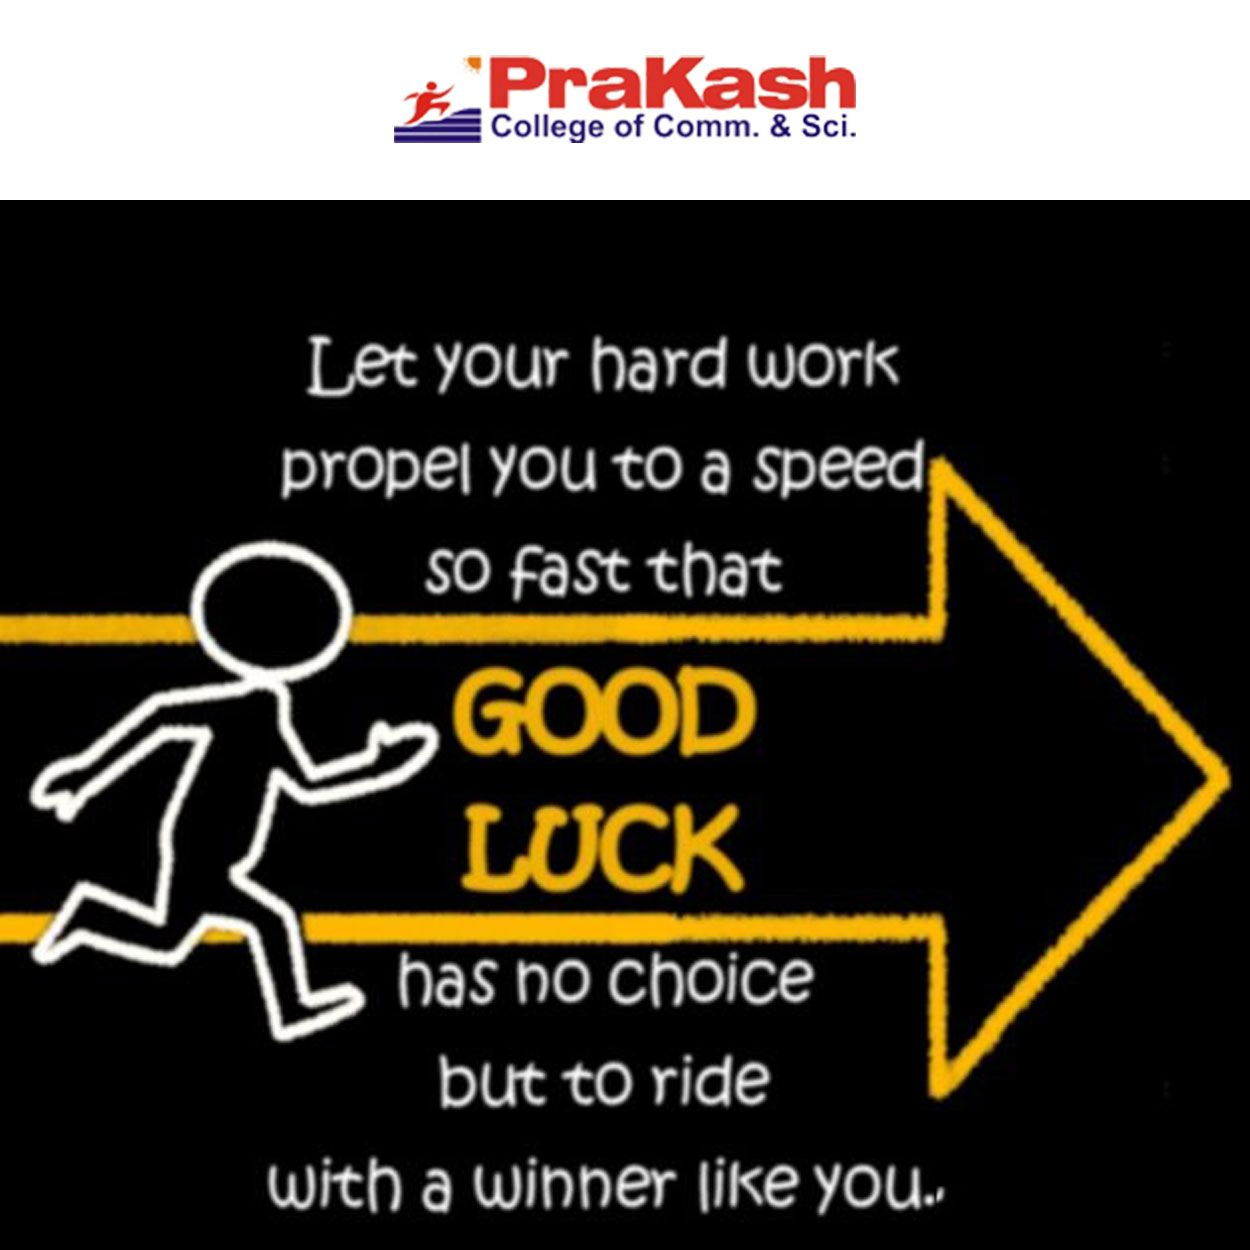 Let Your Hard Work Propel You To A Speed So Fast That Good Luck